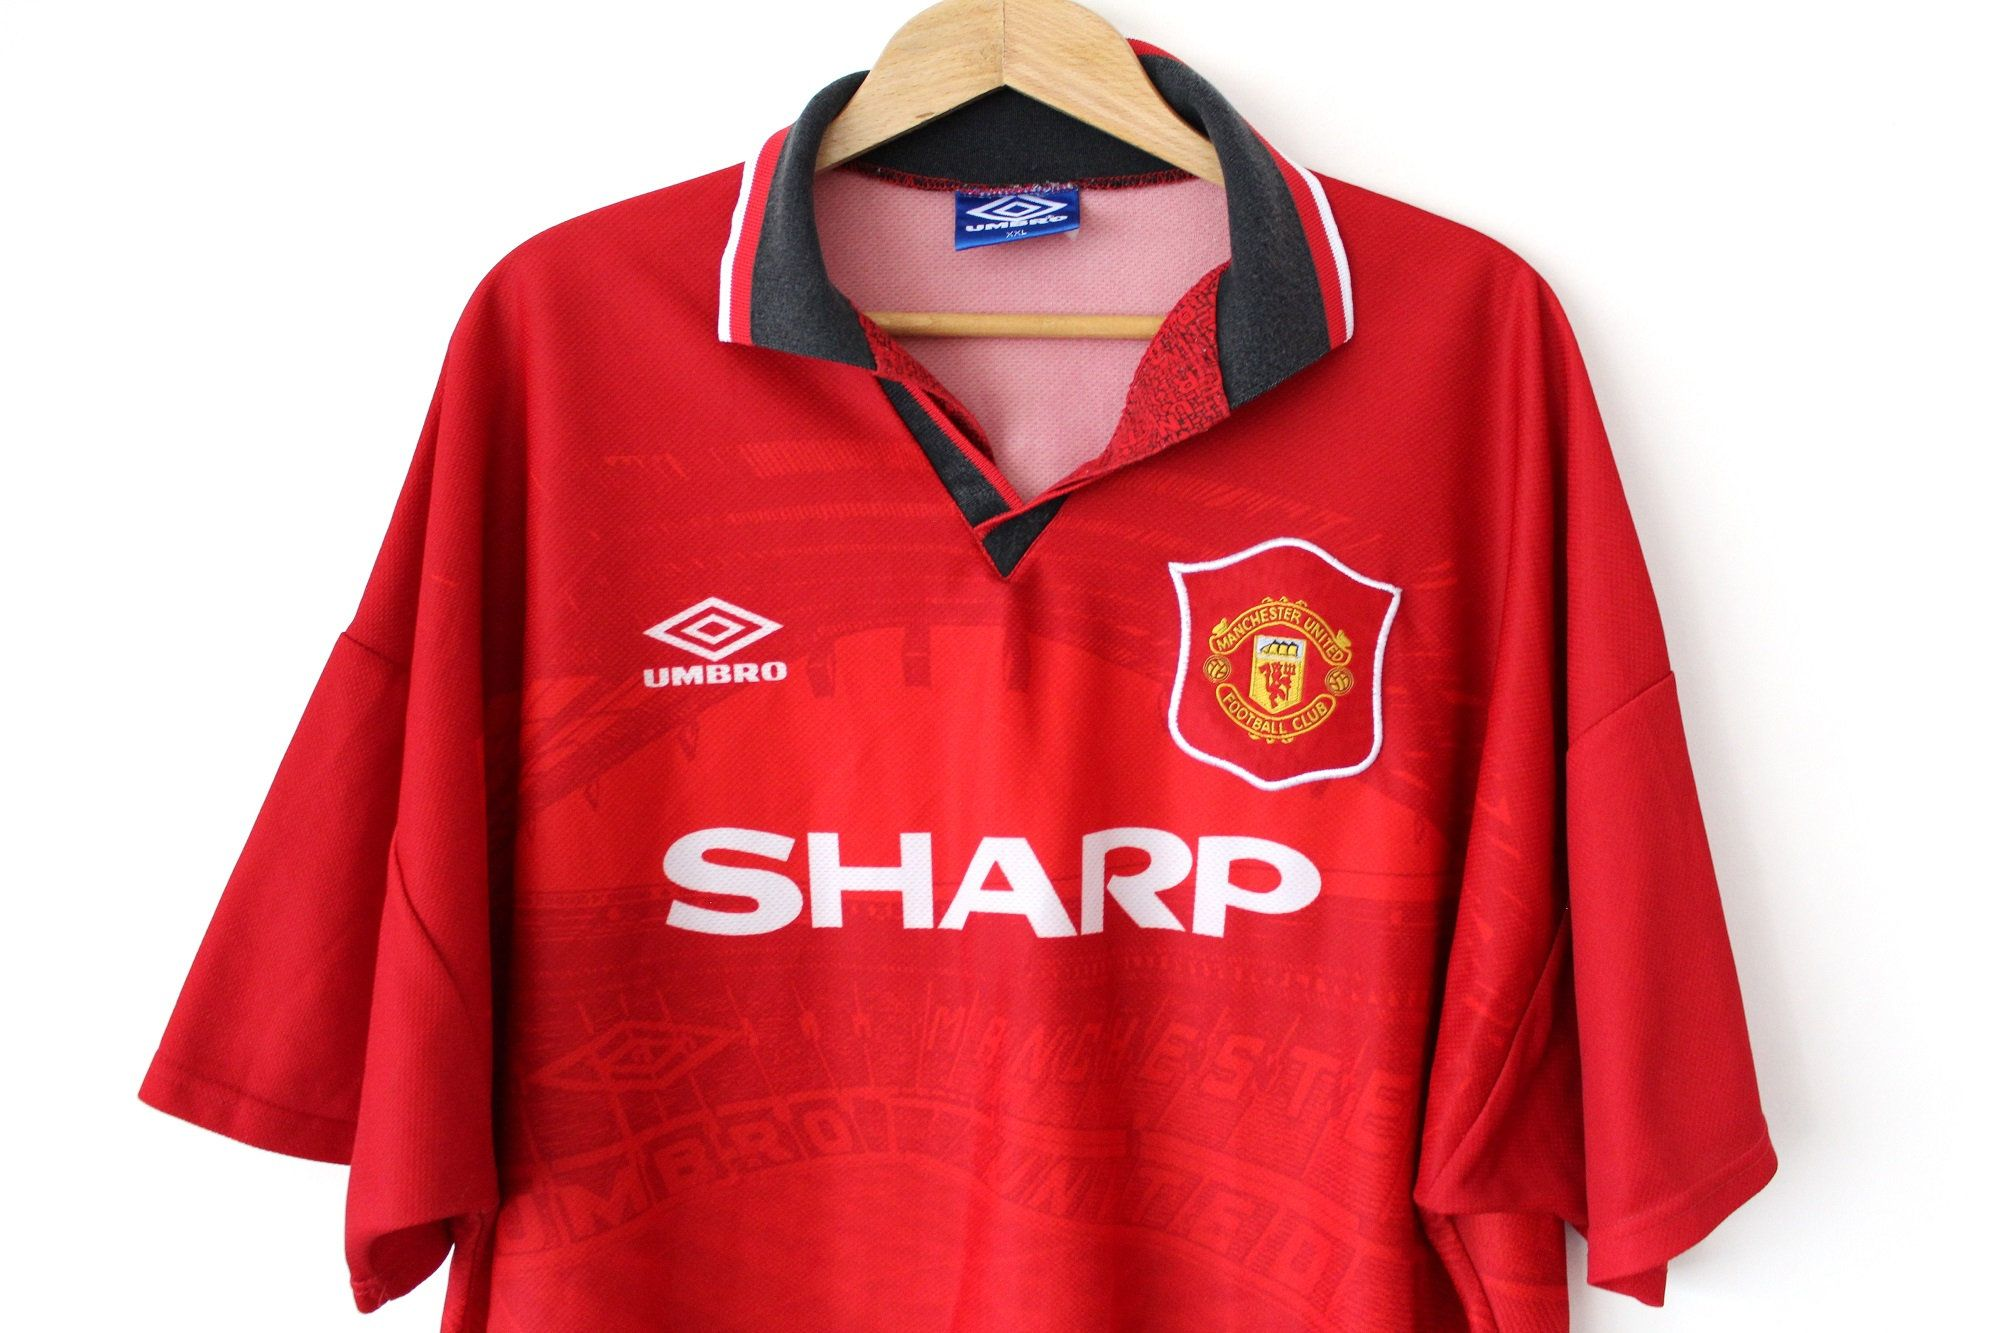 94 96 Umbro Manchester United Sharp Shirt Vintage Football Jersey Made In England Red Soccer Shirt Manchester United Ho Soccer Shirts Umbro Vintage Football